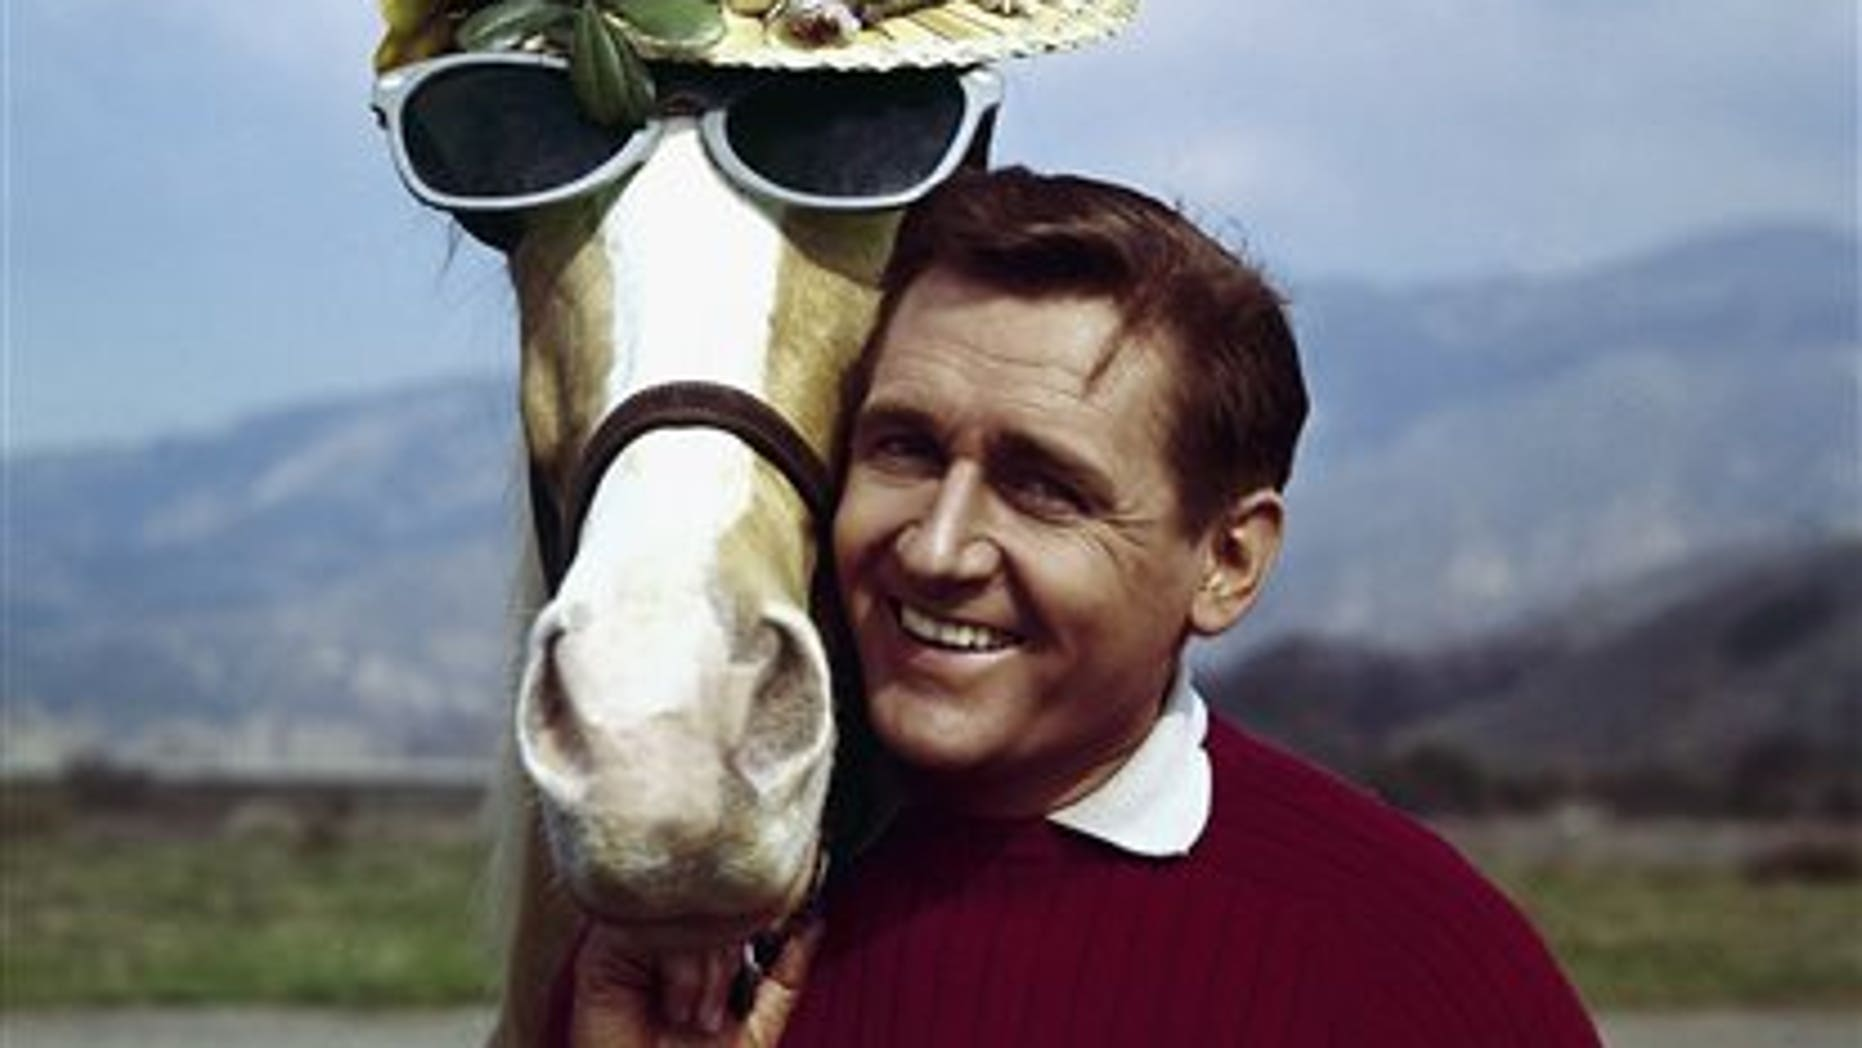 """FILE - In this March 22, 1962 file photo, actor Alan Young poses with the """"Mister Ed,"""" horse. Young died Thursday, May 19, 2016. He was 96. (AP Photo, File)"""